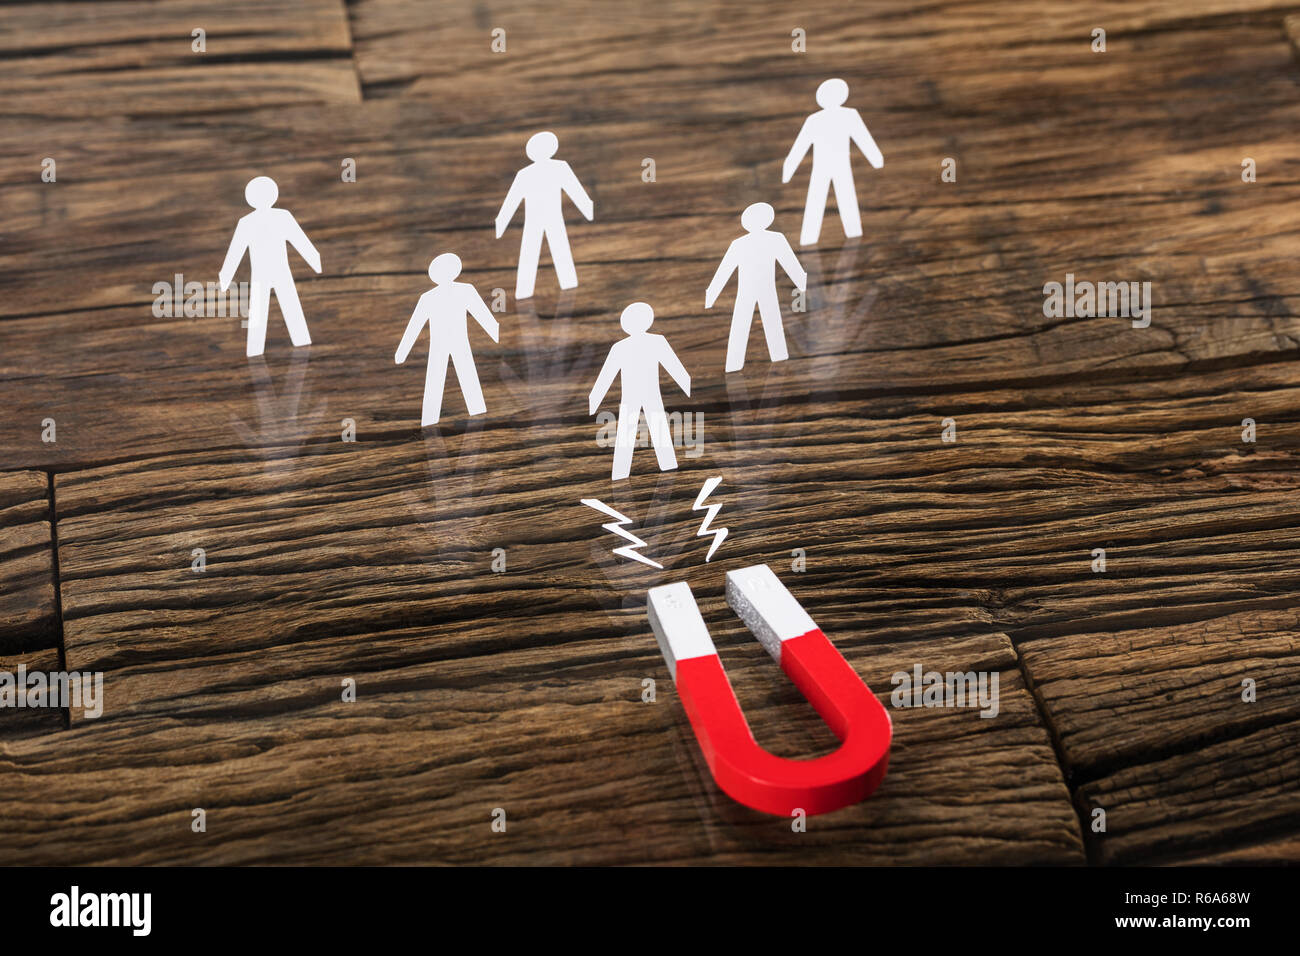 Magnet Attracting Paper Cut Out - Stock Image